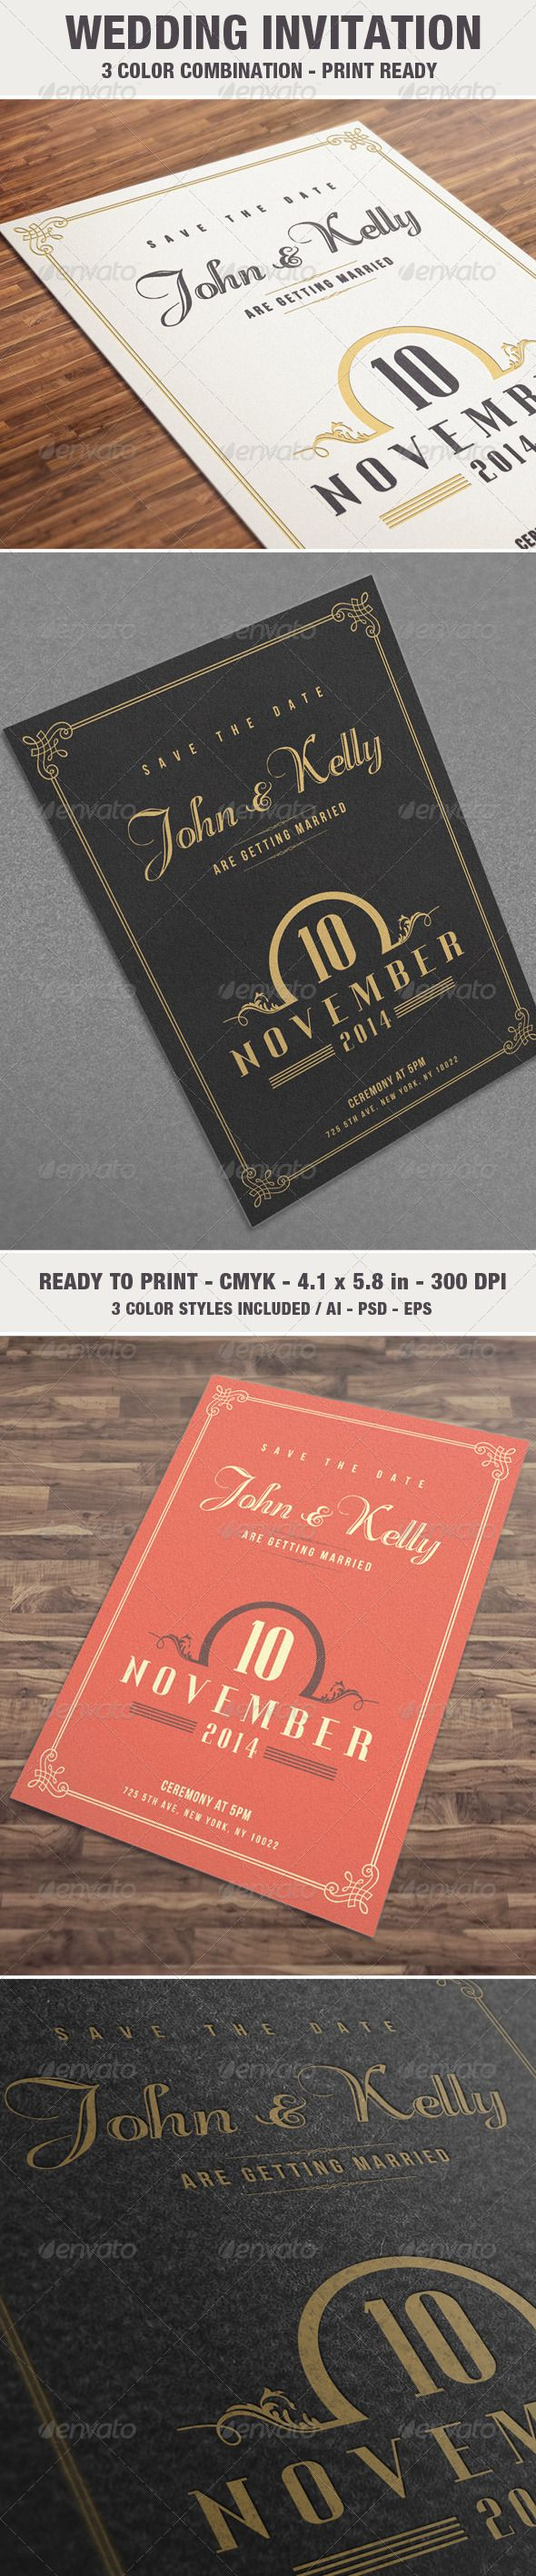 vintage wedding invitation text%0A Elegant  u     Vintage Wedding Invitation   Card V